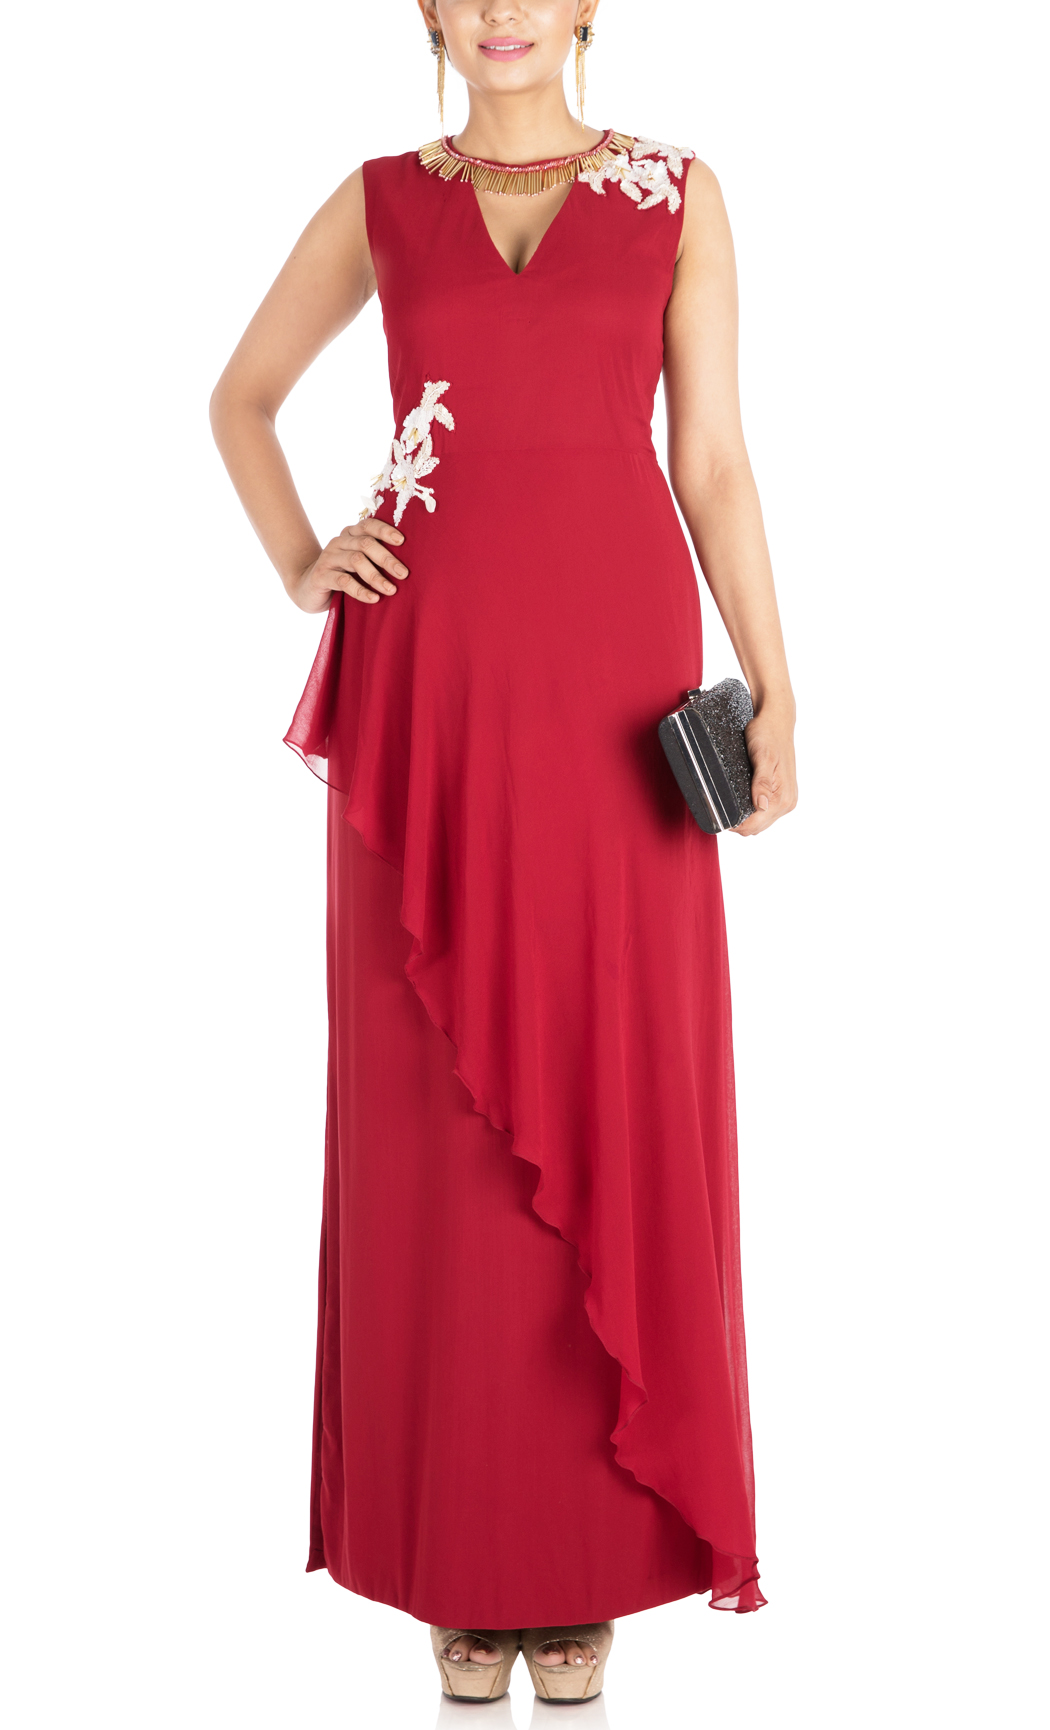 Crimson Red Asymmetrical Indowestern Layered Gown Dress - Buy Online